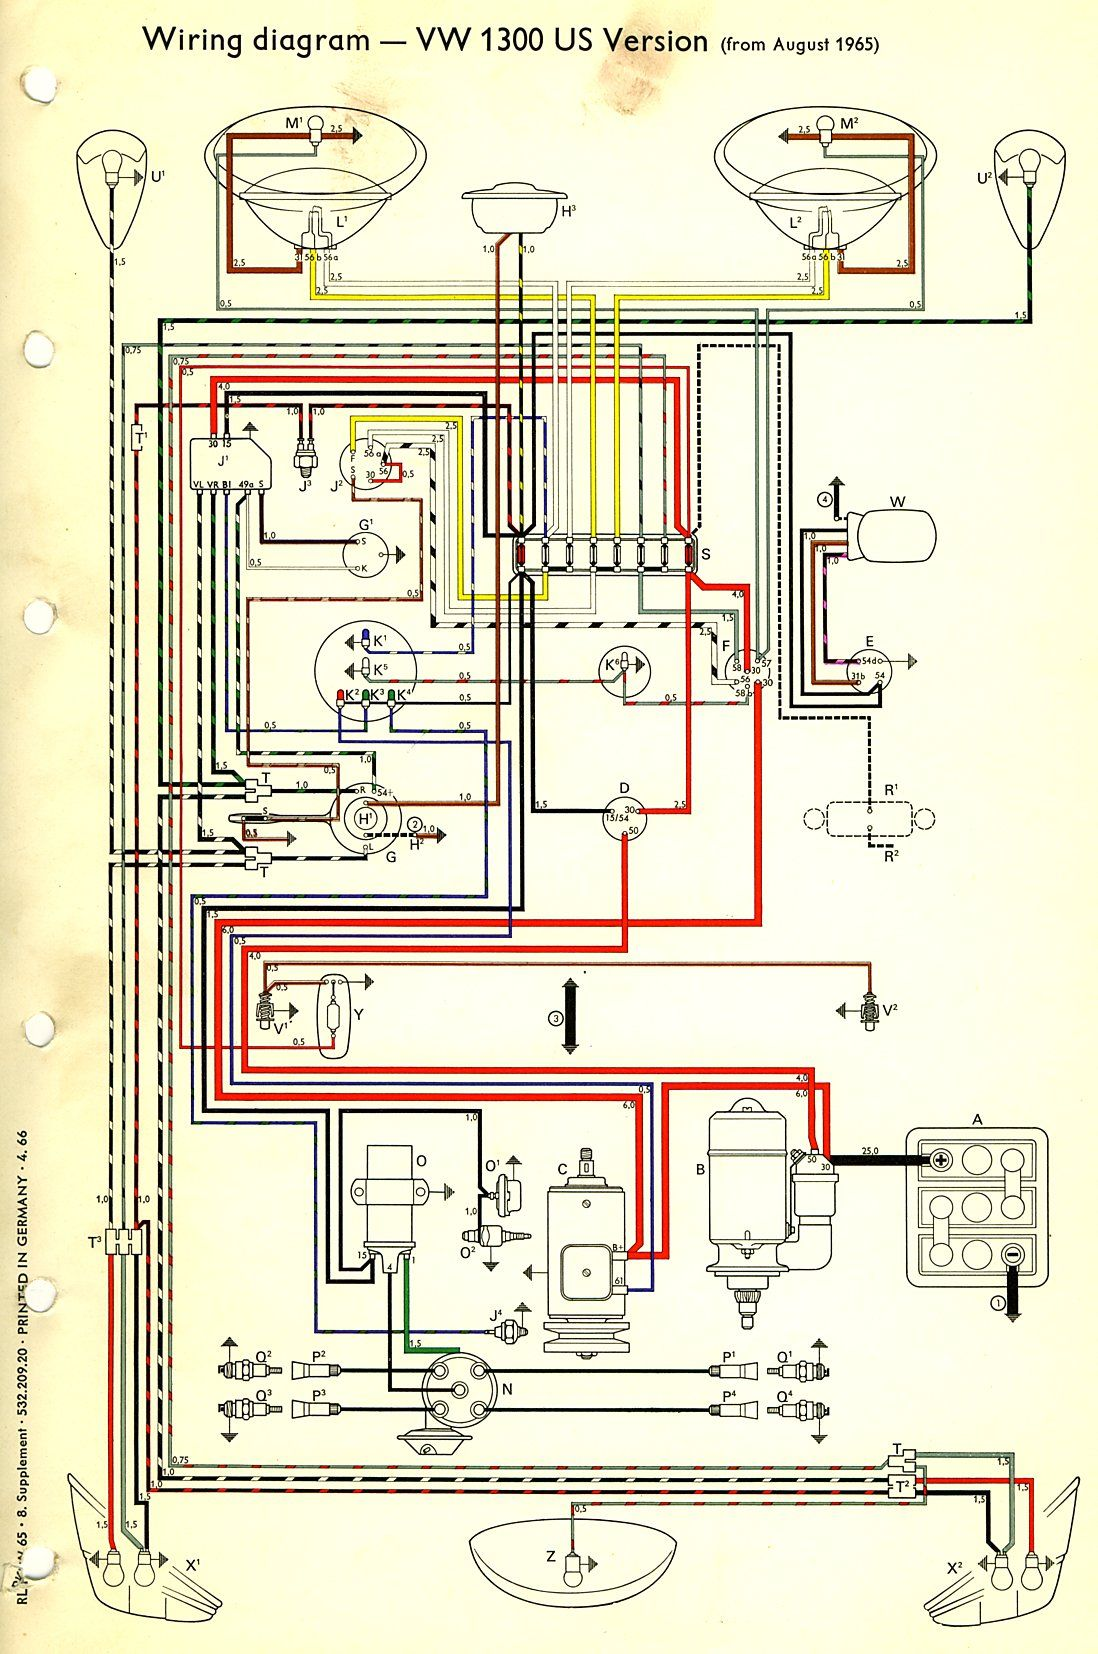 Dune Vw Alternator Wiring Just Another Diagram Blog Jetta Detailed Rh 11 1 Gastspiel Gerhartz De